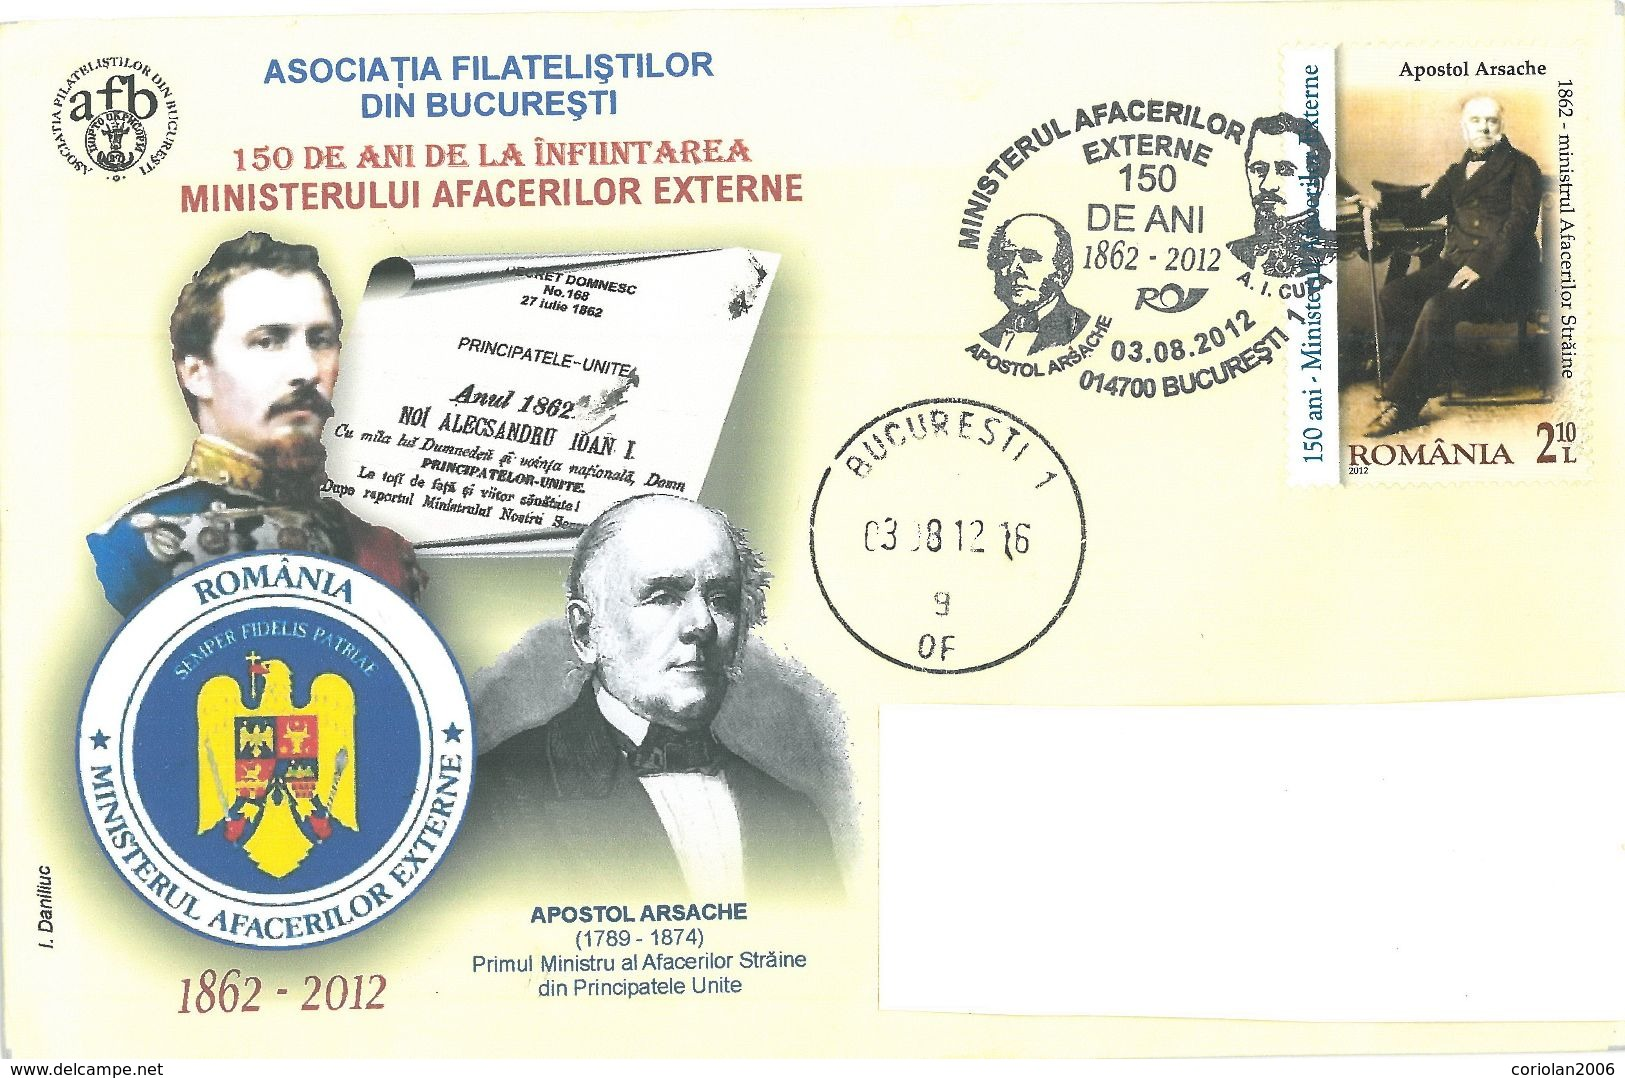 Romania / Special Cover With Special Cancellation -  150 Years Ministery Of Foreign Afaires, Cuza, Arsache - Post